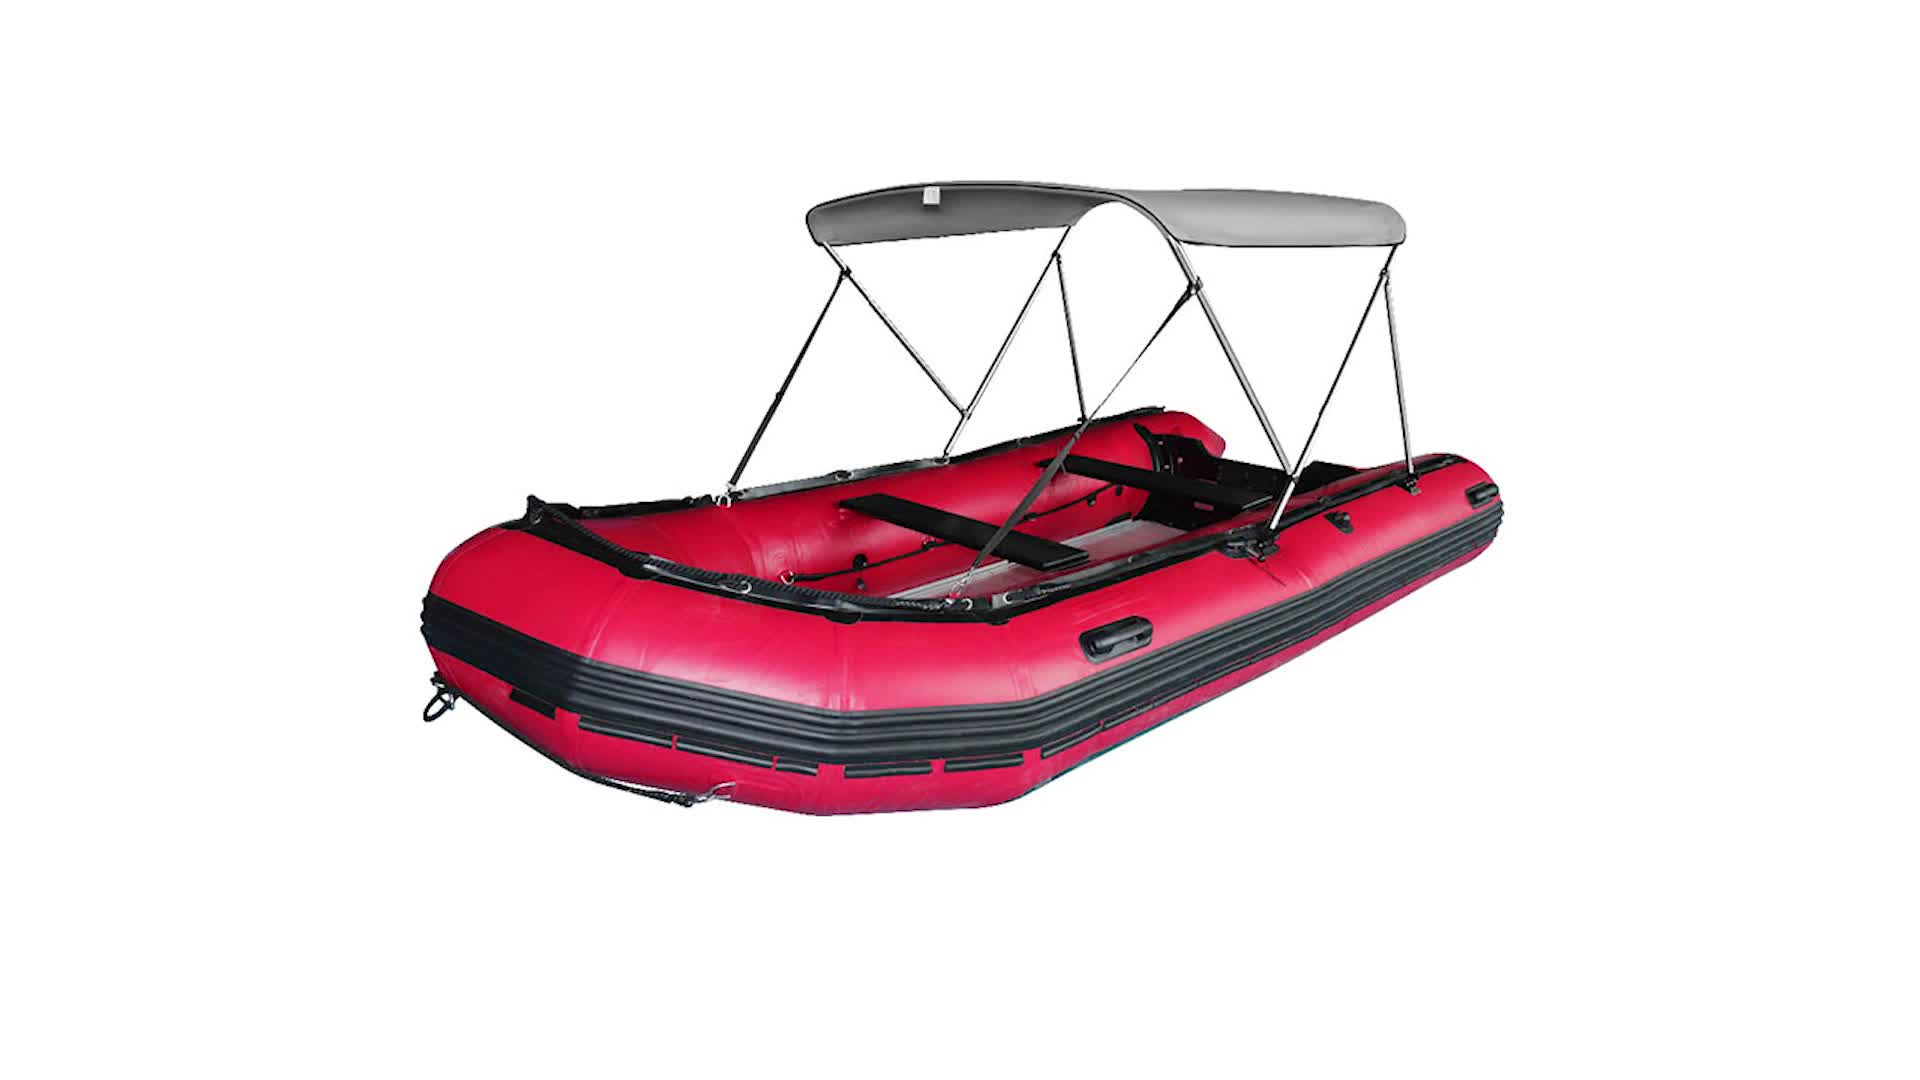 2 Bow Marine Inflatable Boat Bimini Cover Bimini Top with Rear Support Pole and Storage Boot